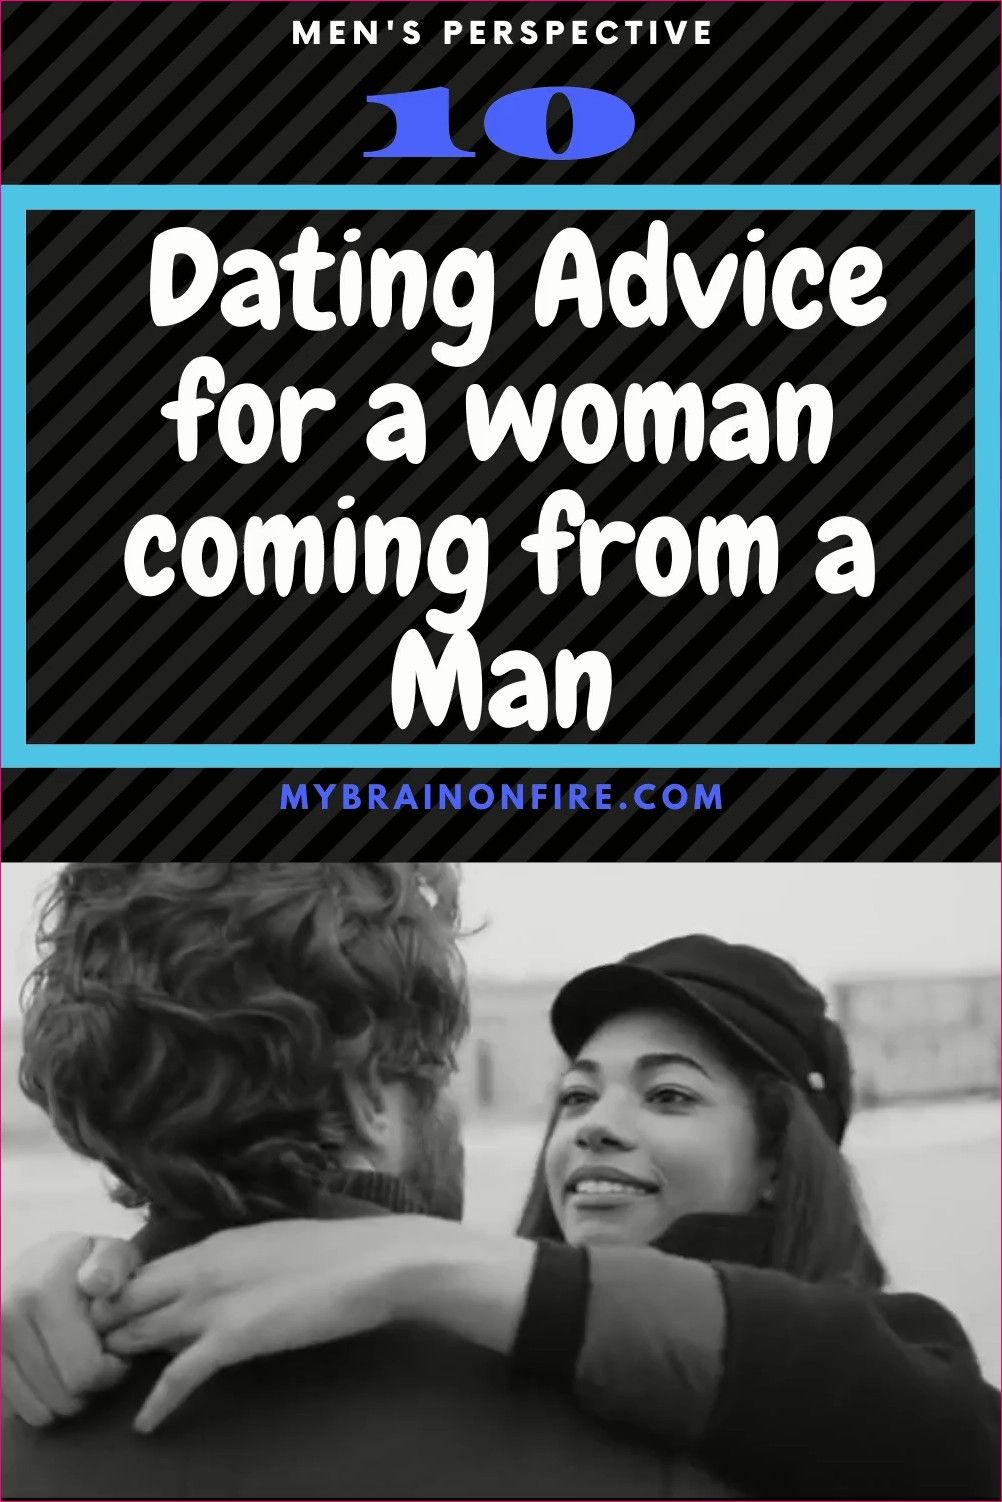 c1a64ff4ae1045d09db0ffca63efd707 - How Do I Get My Husband To Want Me More